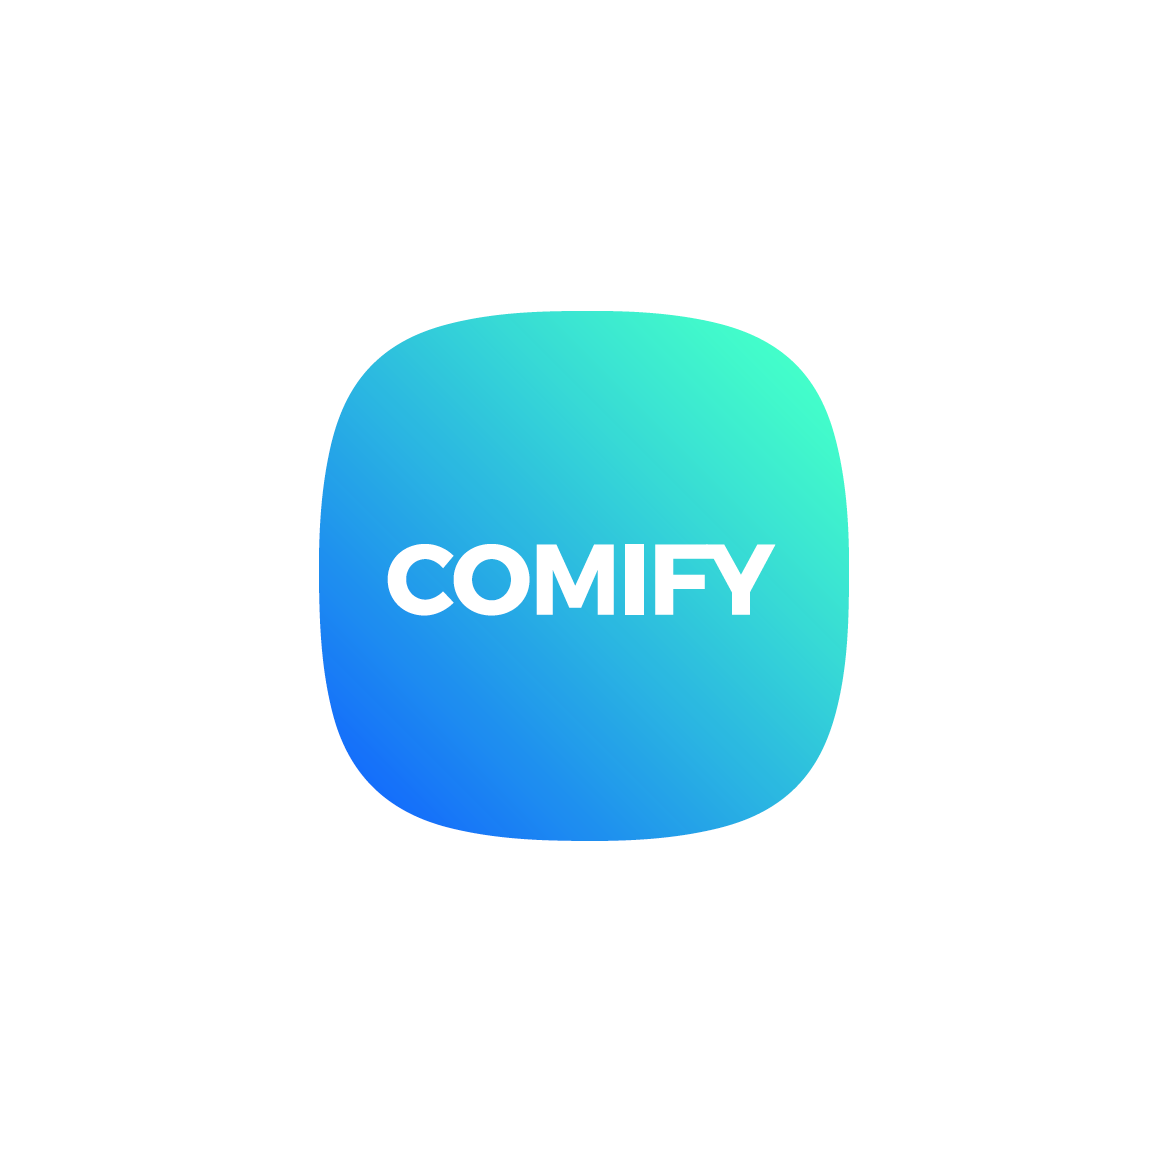 comify-logo.png